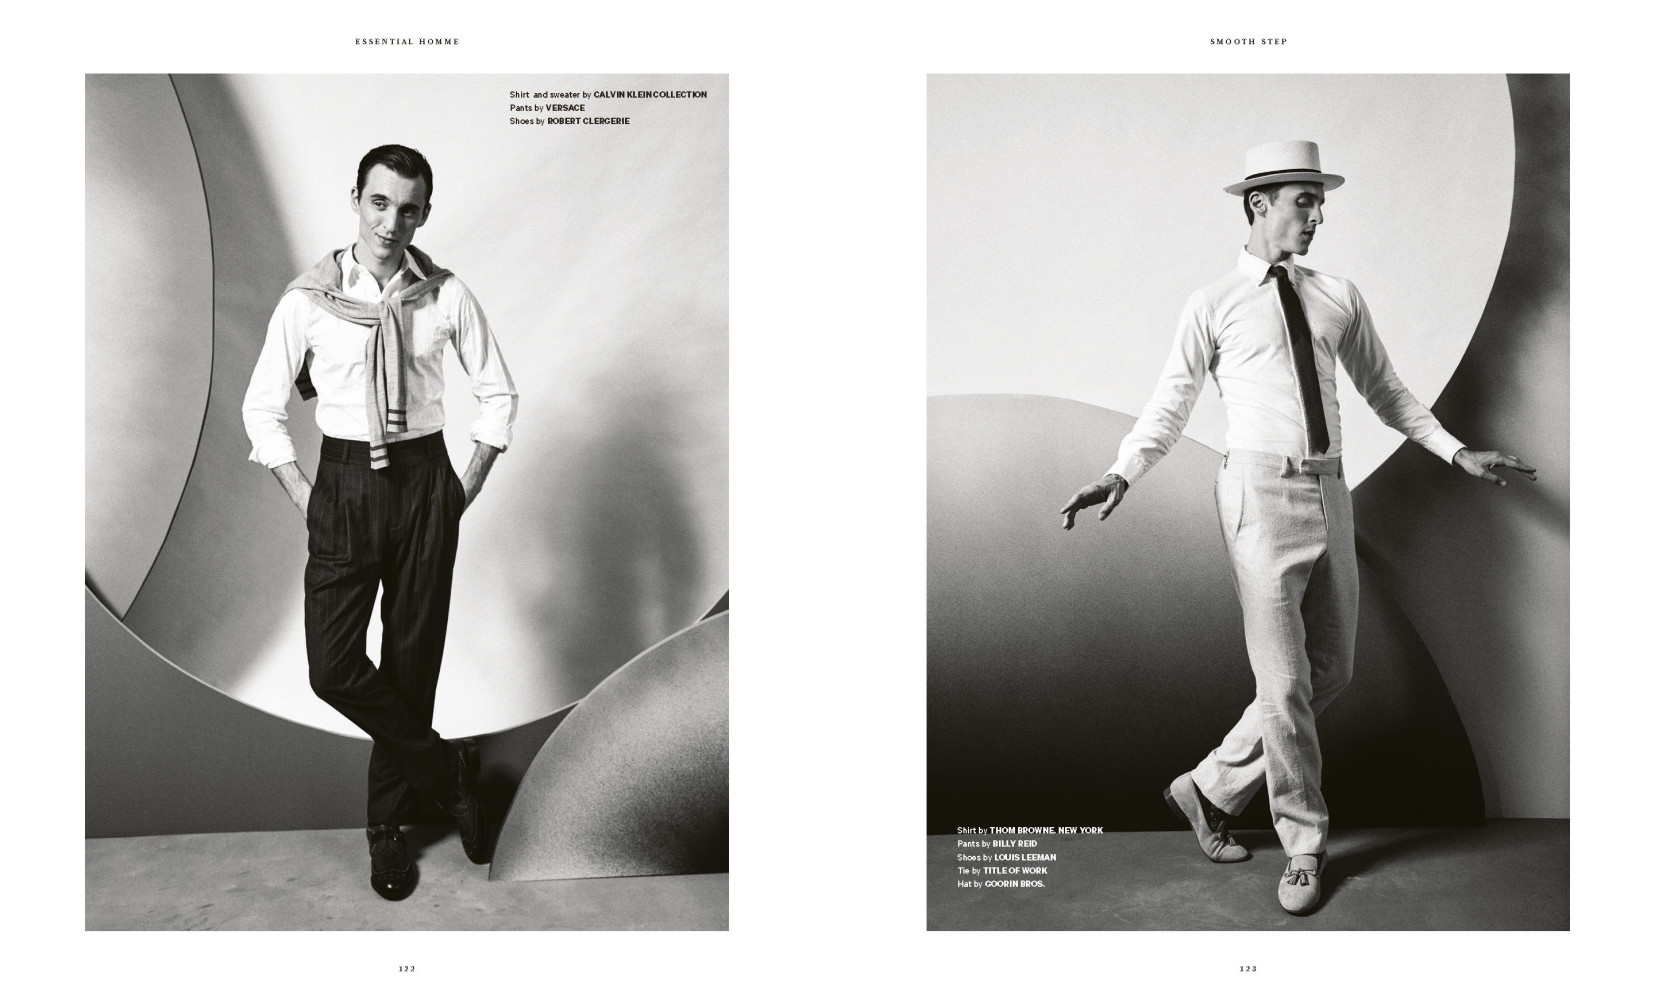 THOMAS FOR ESSENTIAL HOMME